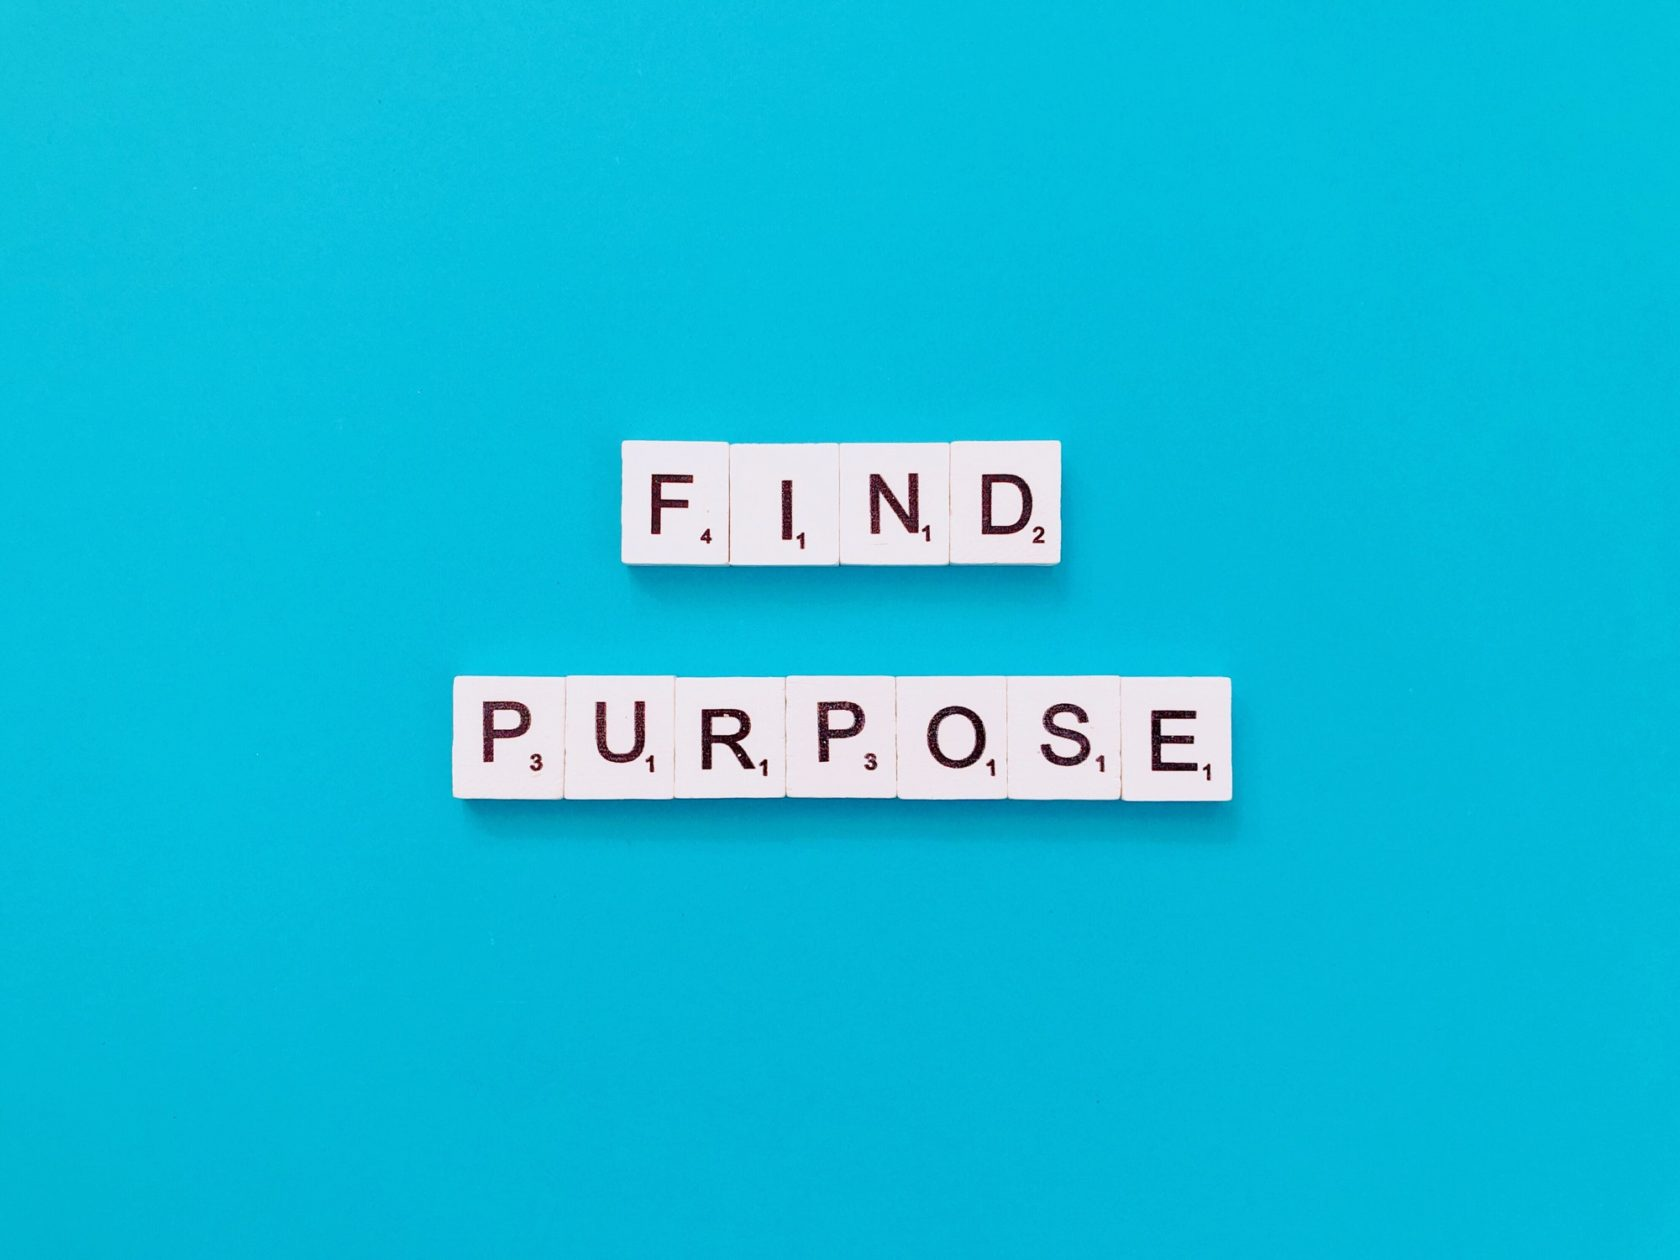 Find purpose.